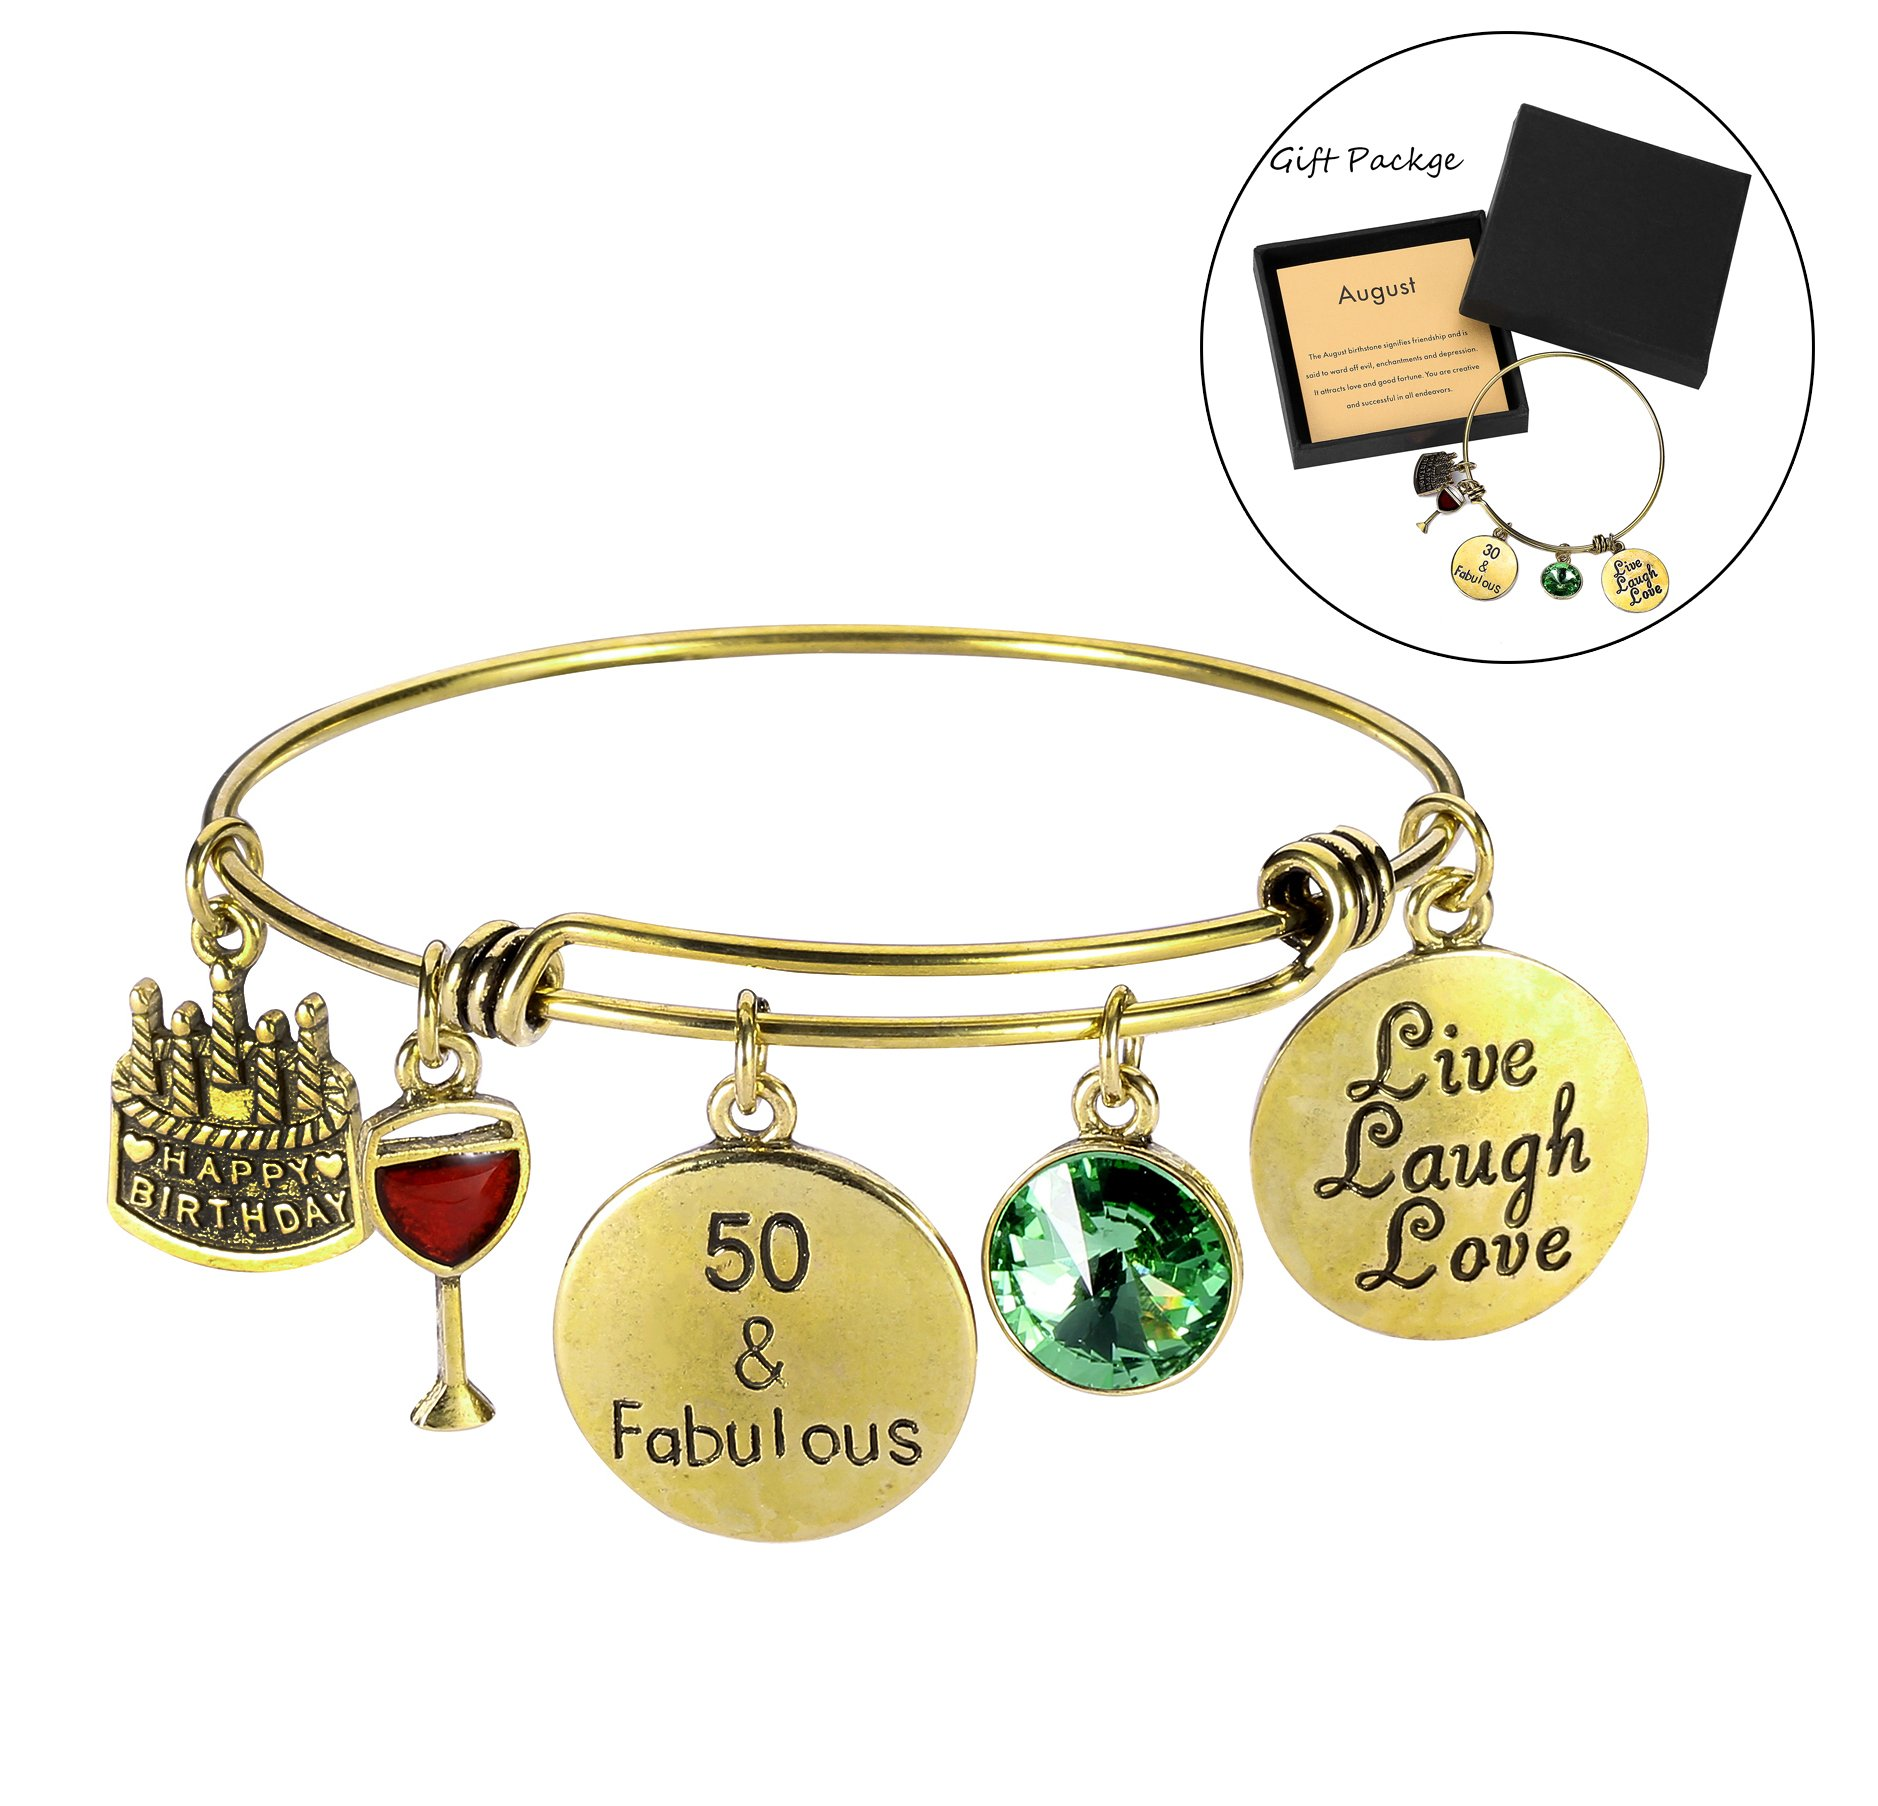 50th Birthday Gift Bangles Live Laugh Love Charms Birthstone Expandable Bangle Bracelets with Message Card for Women